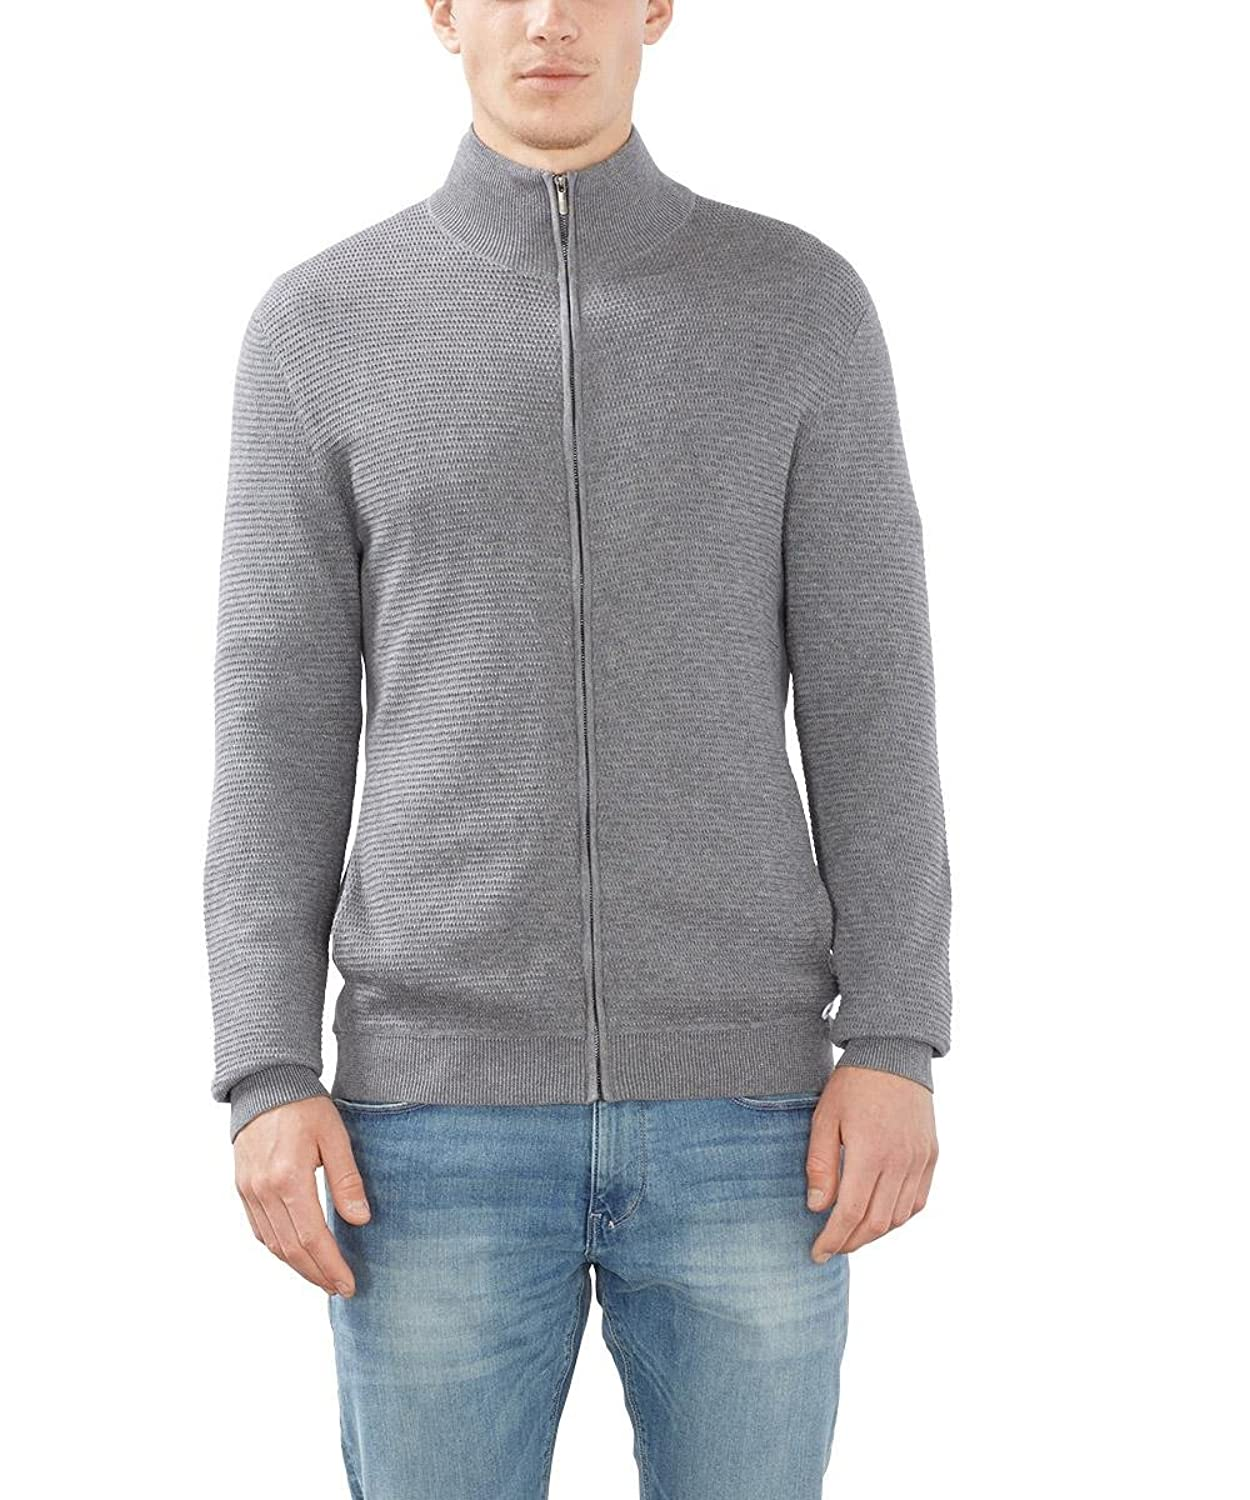 ESPRIT Collection Herren Pullover 086eo2i004